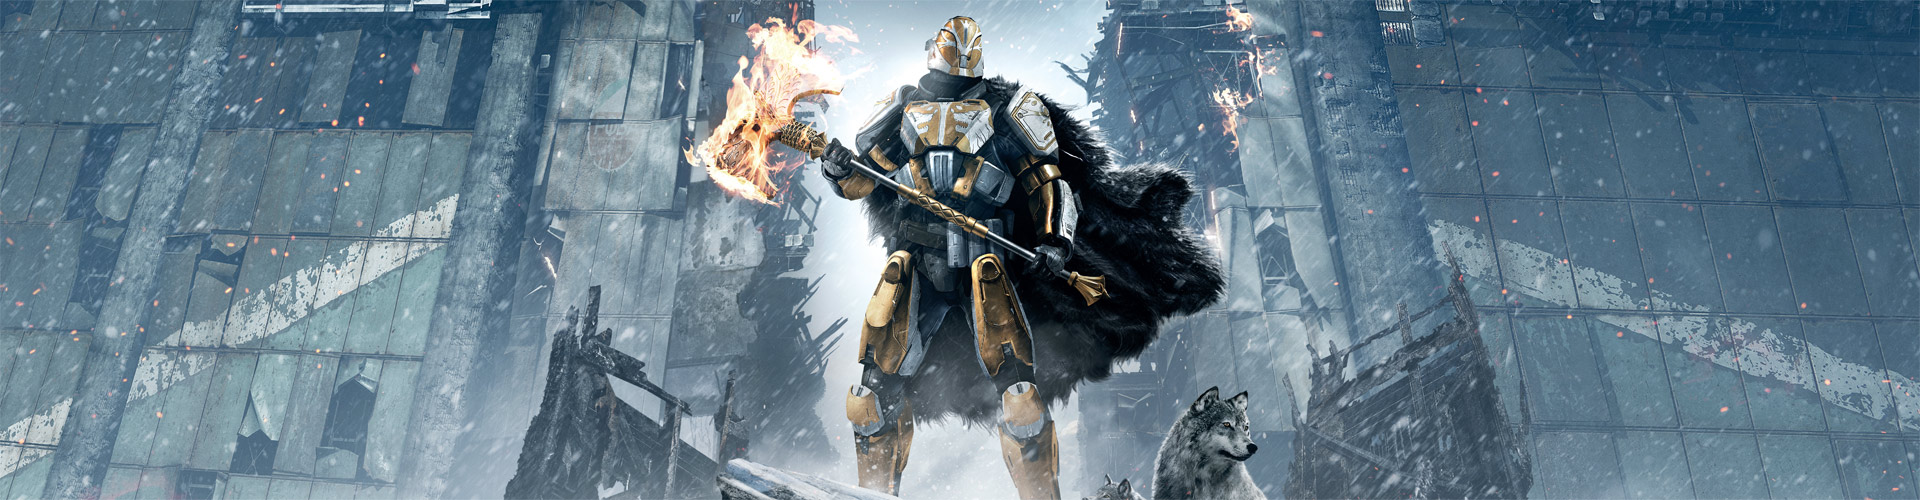 Virgin Media and Activision bring Destiny: Rise of Iron to EGX 2016